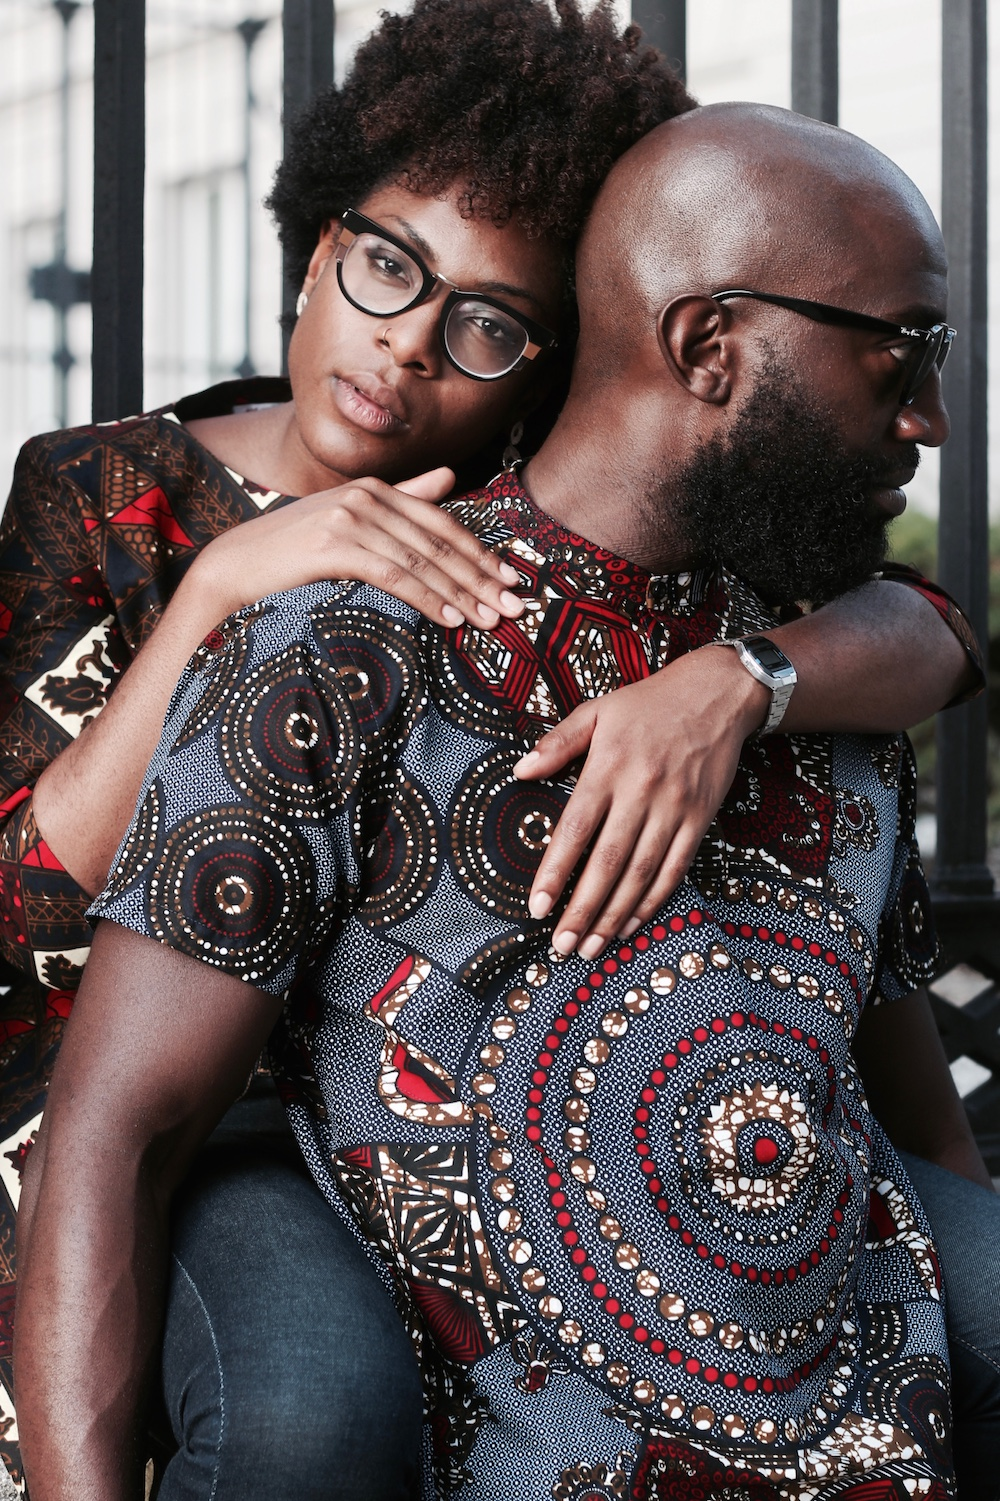 black-love-portrait-Ashley-Moponda